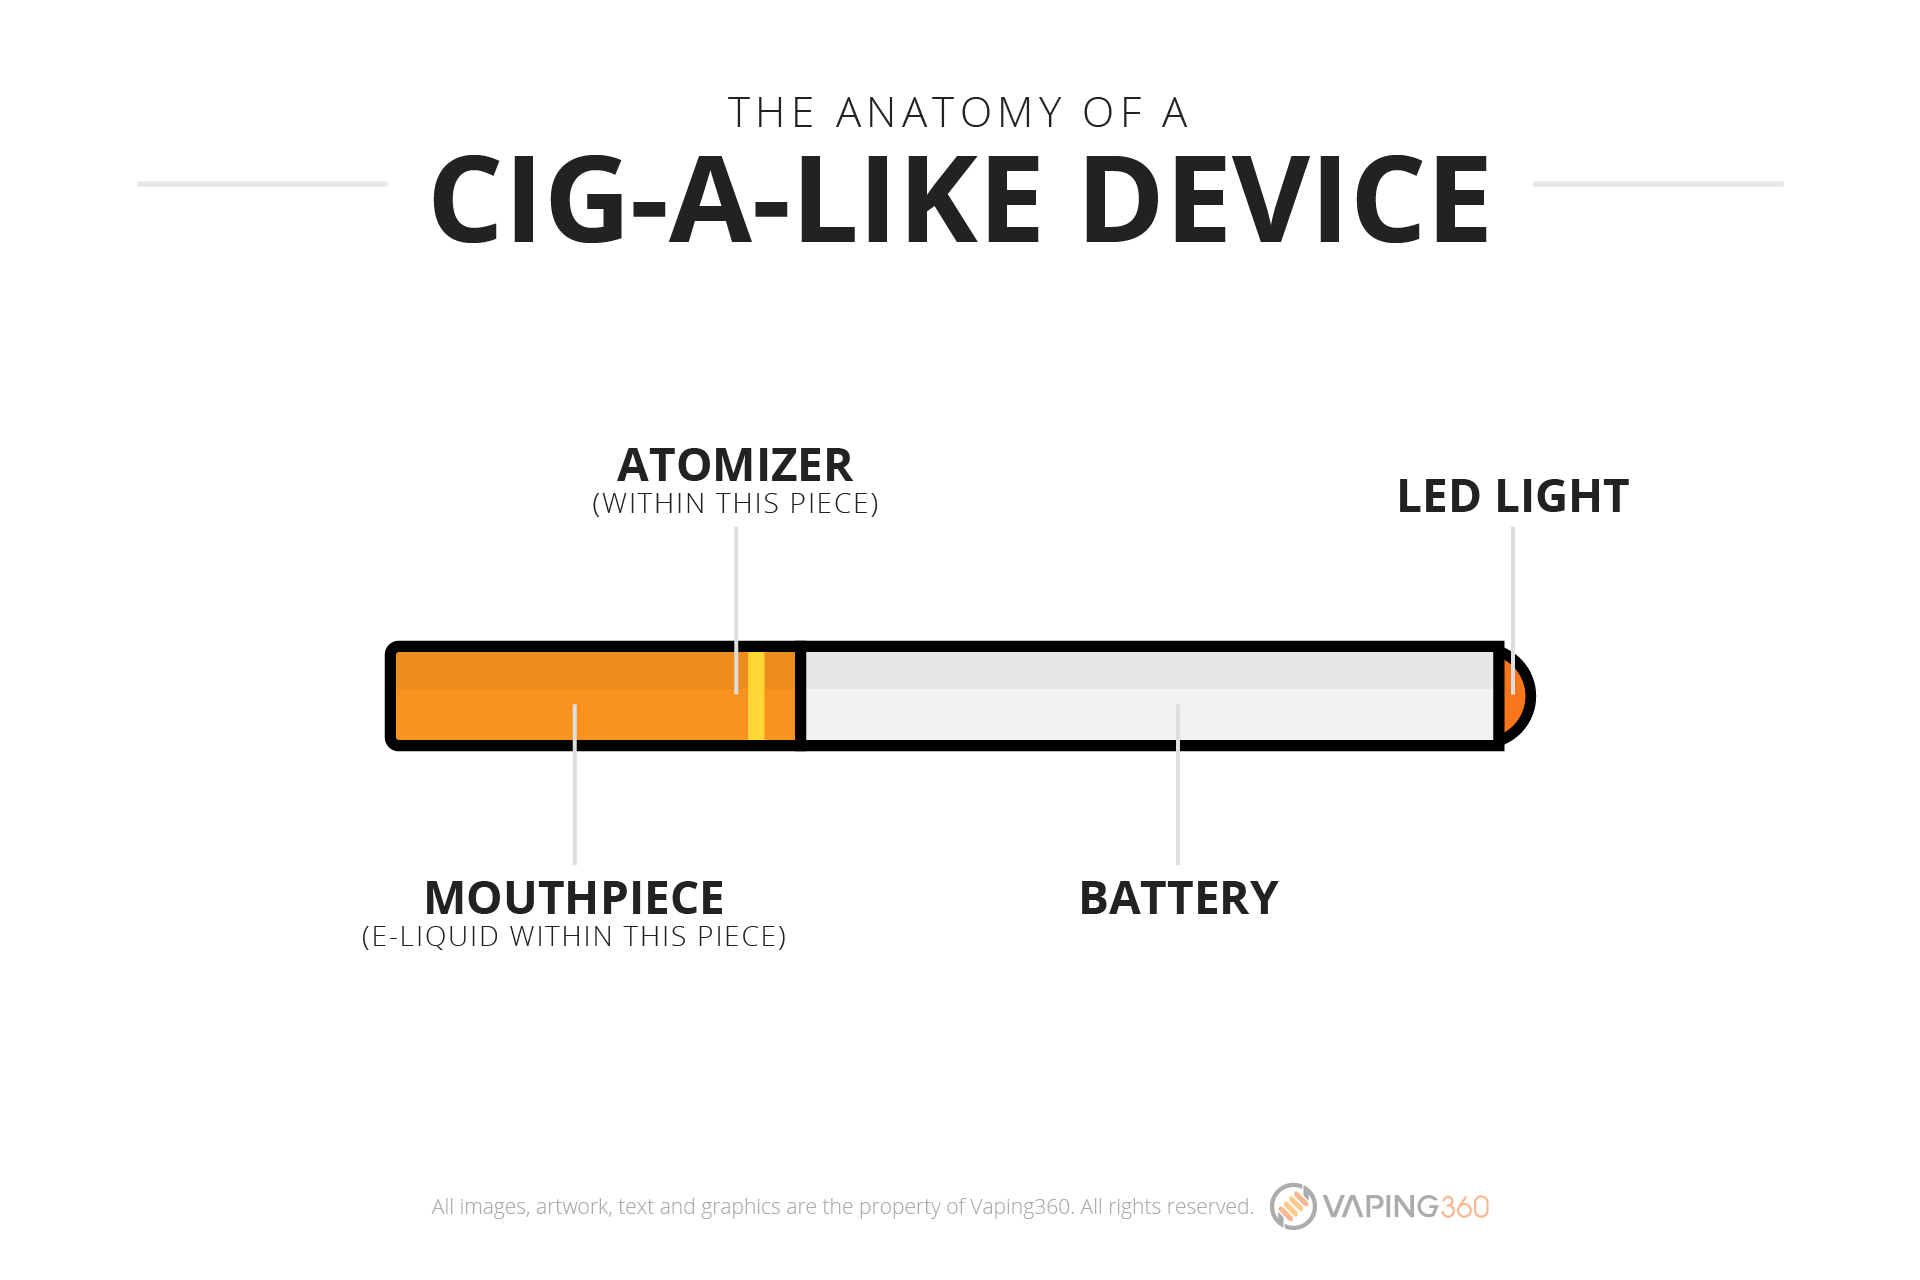 the-anatomy-of-a-cig-a-like-device